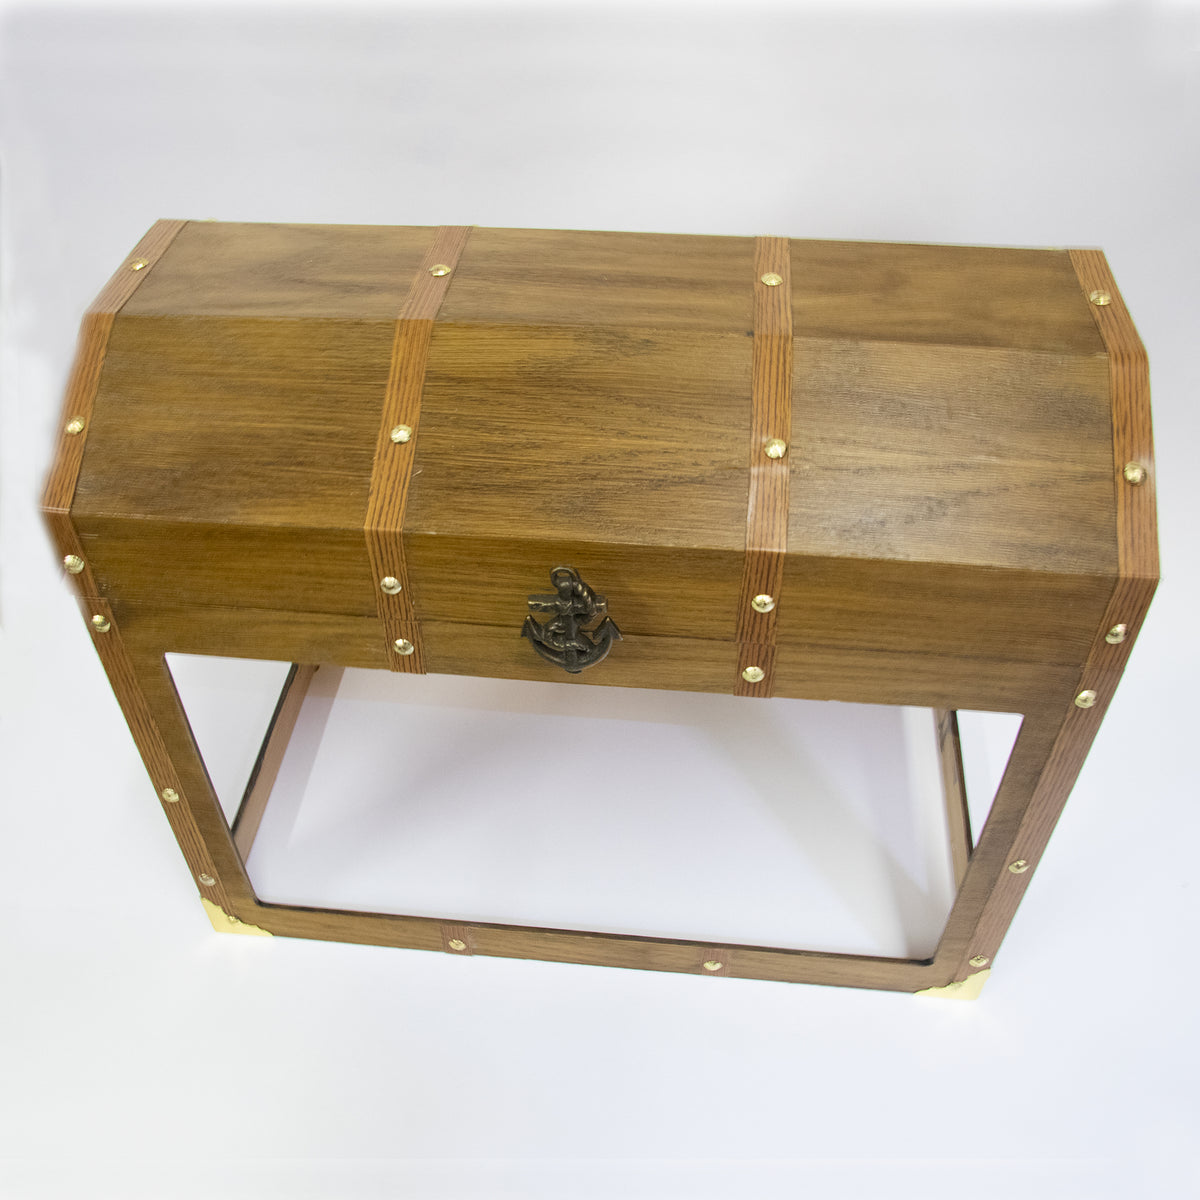 Tank Cover - Hand-made sea chest